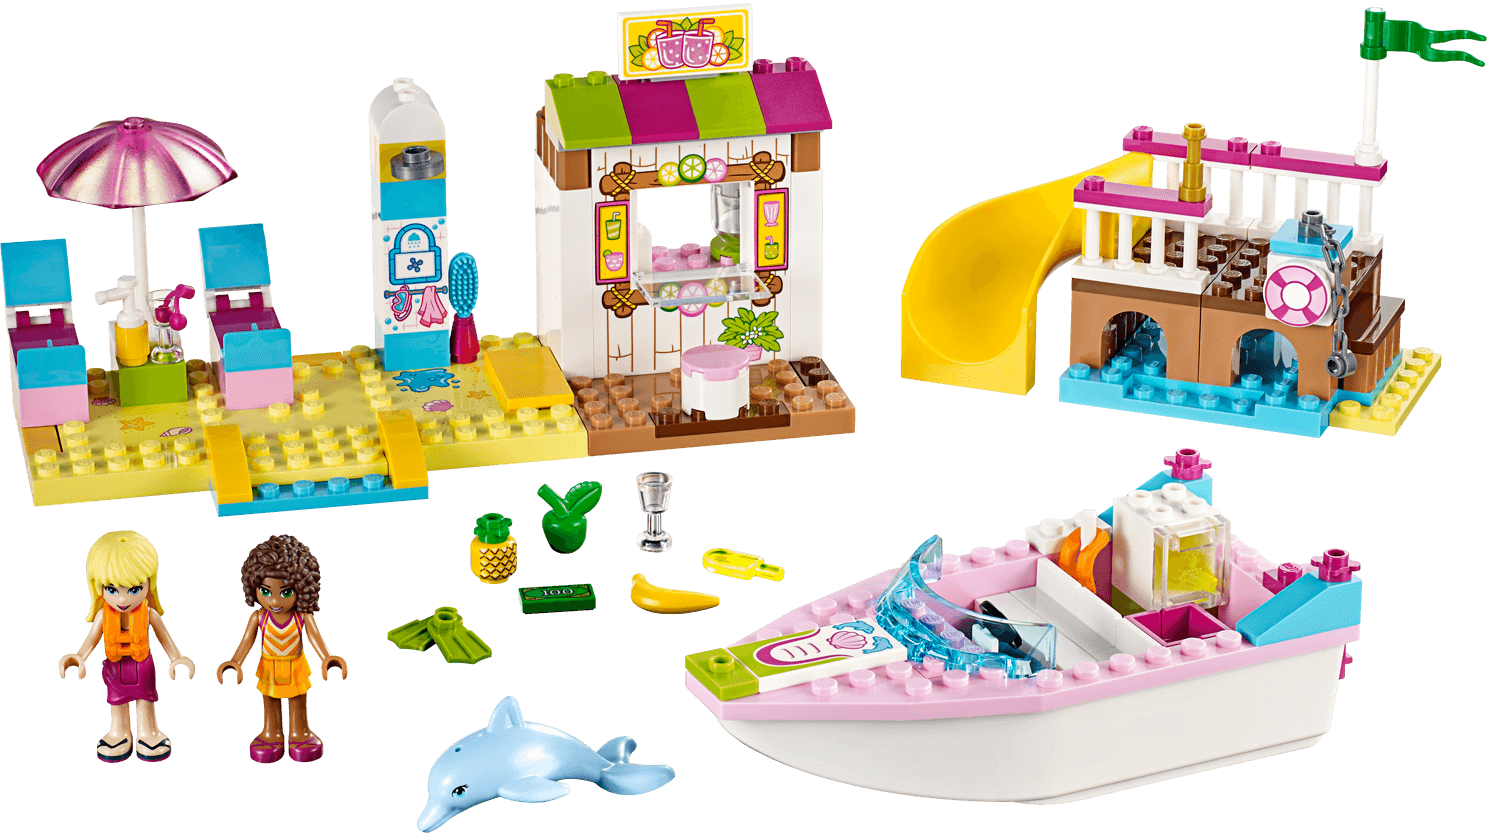 Palace clipart castle lego. Search results shop andrea